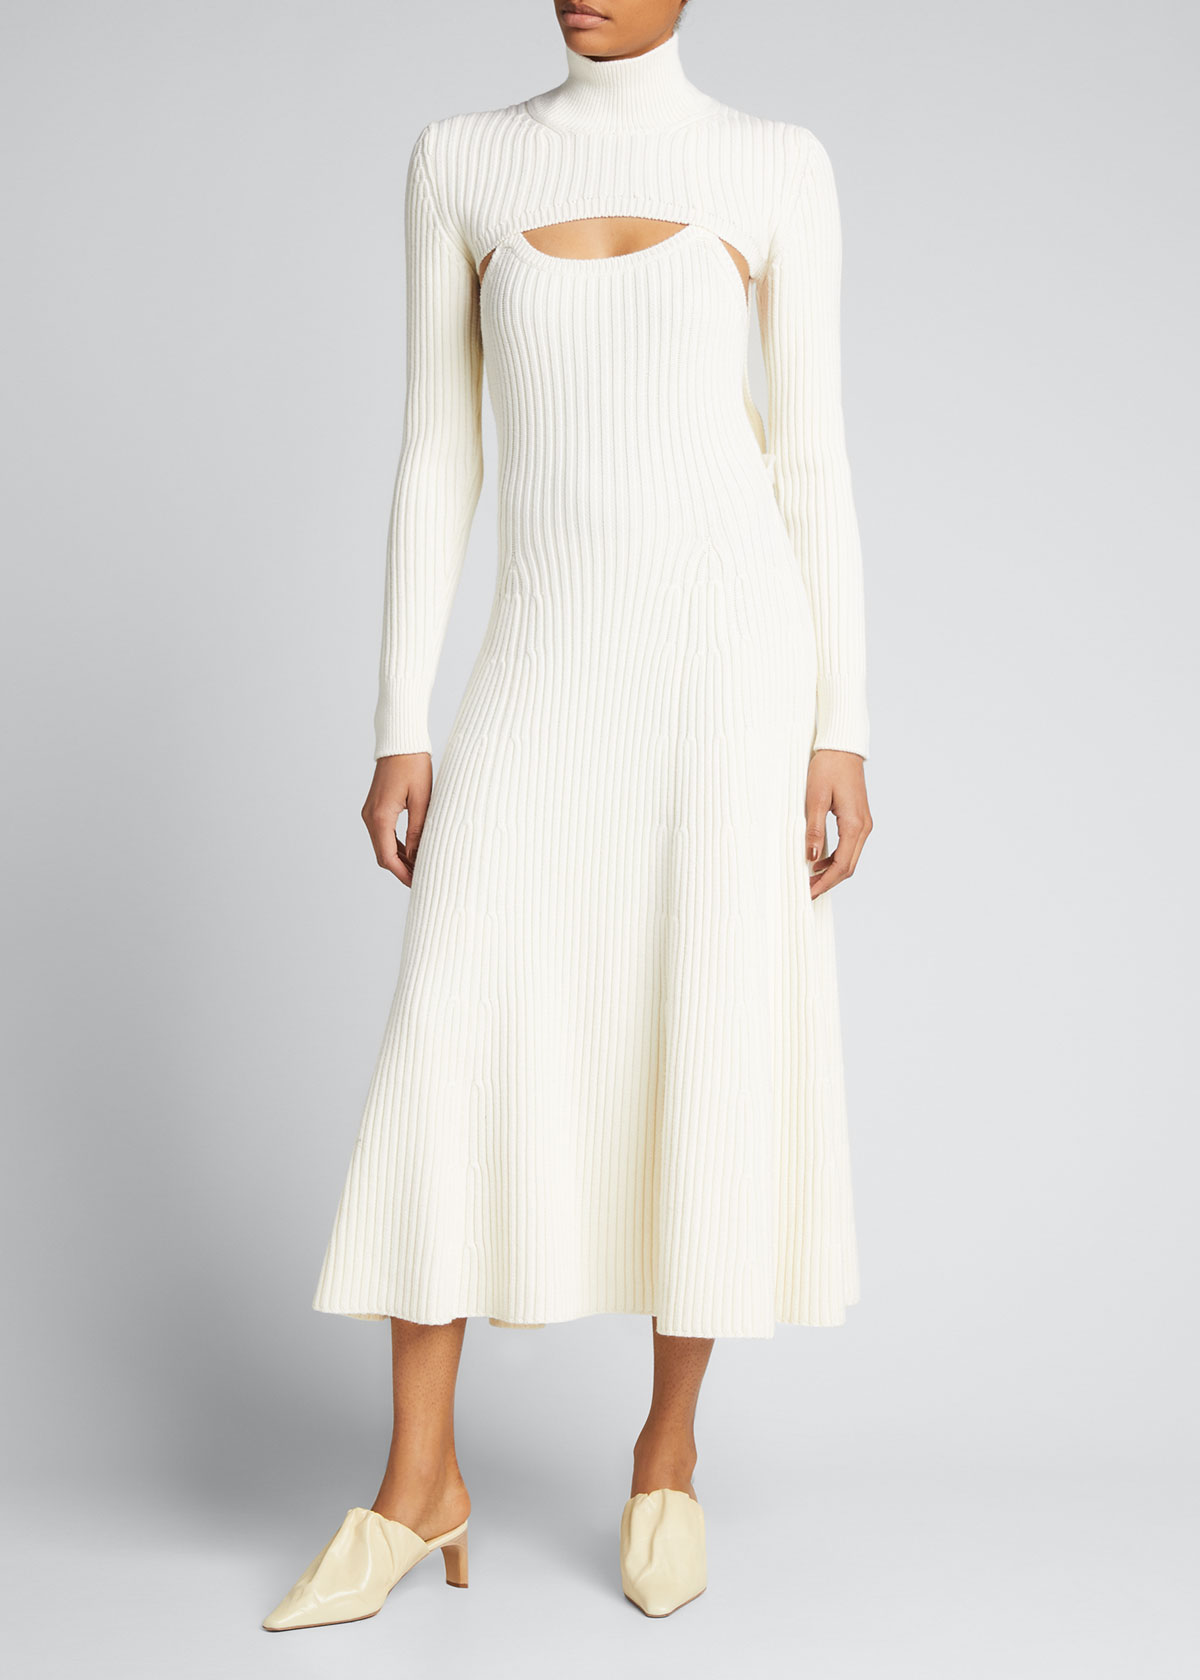 Rosie Assoulin CABLE-KNIT WOOL MAXI DRESS W/ REMOVABLE SWEATER